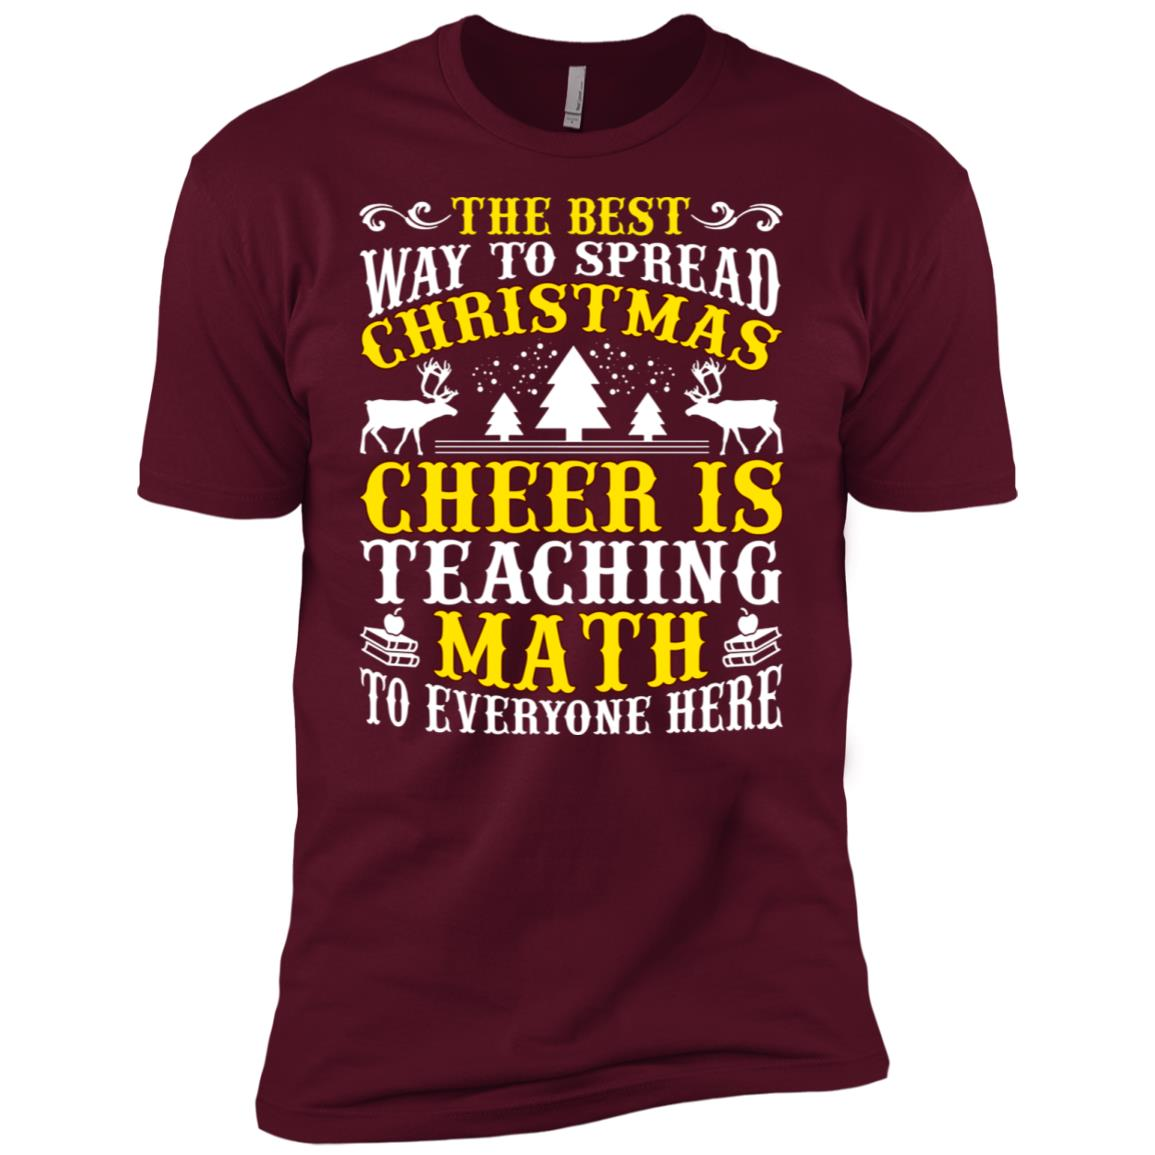 Cheer Teaching Math Men Short Sleeve T-Shirt